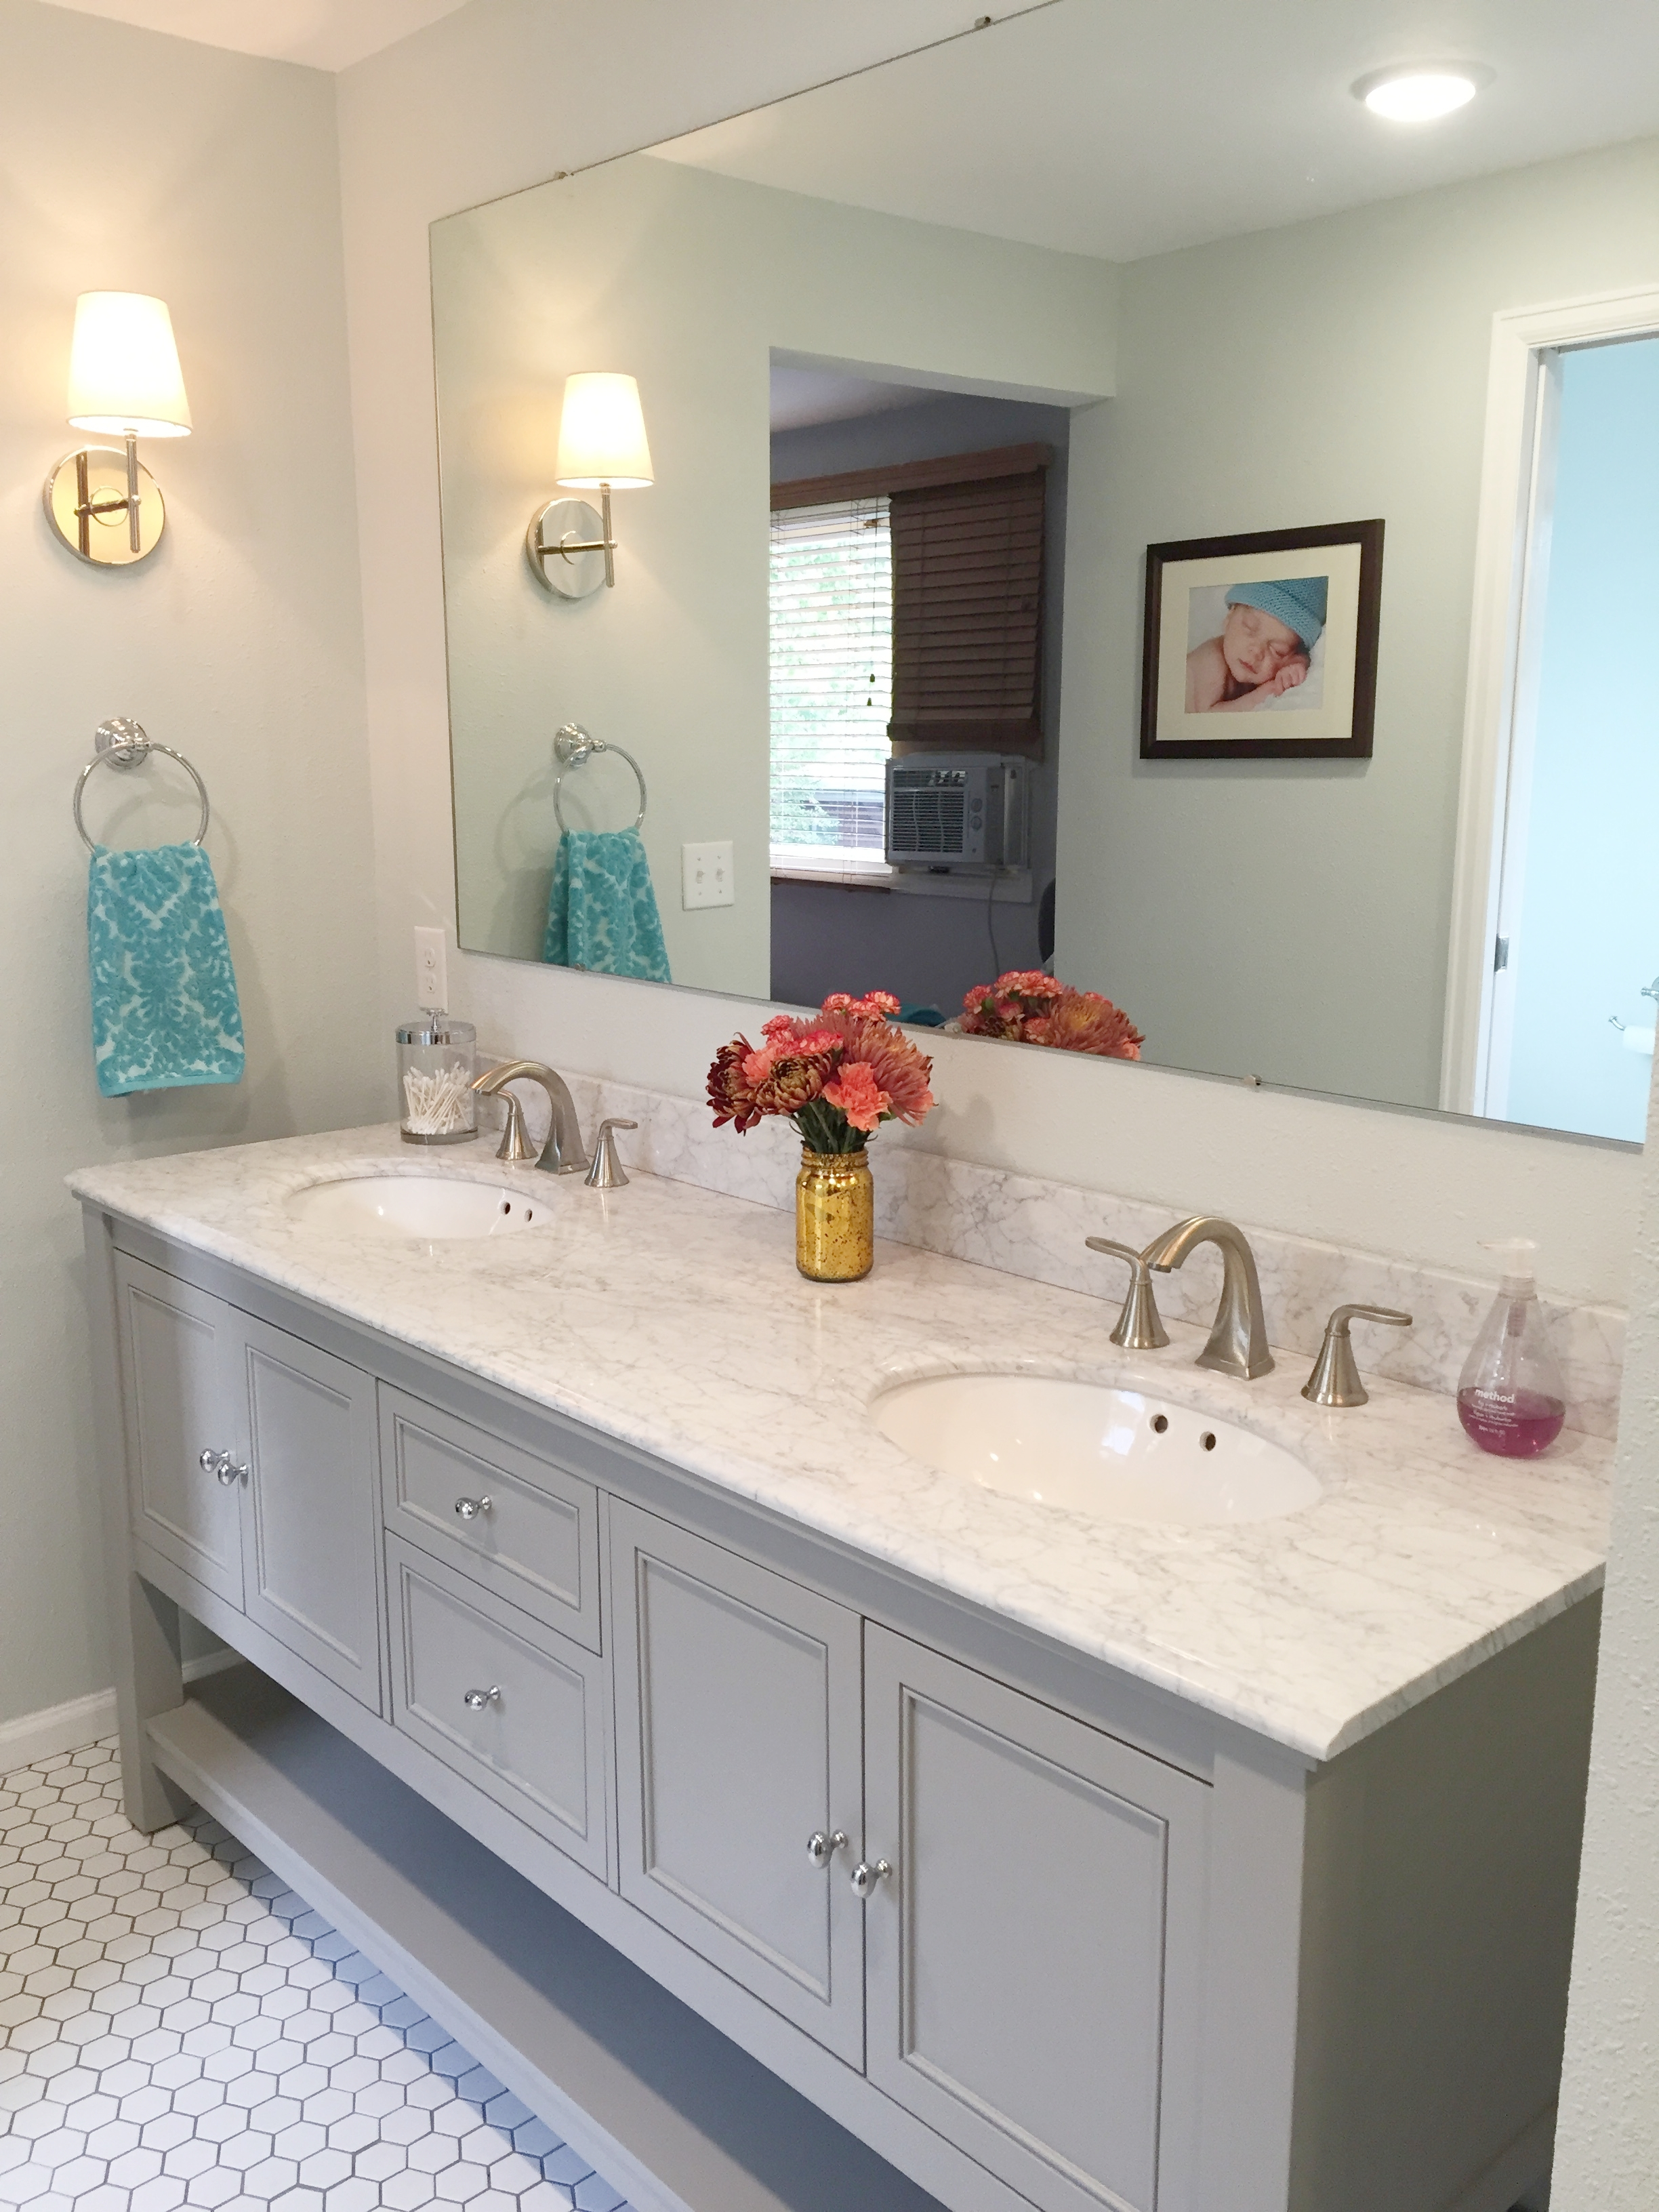 The double sink vanity has a marble countertop and the sconces are West Elm.